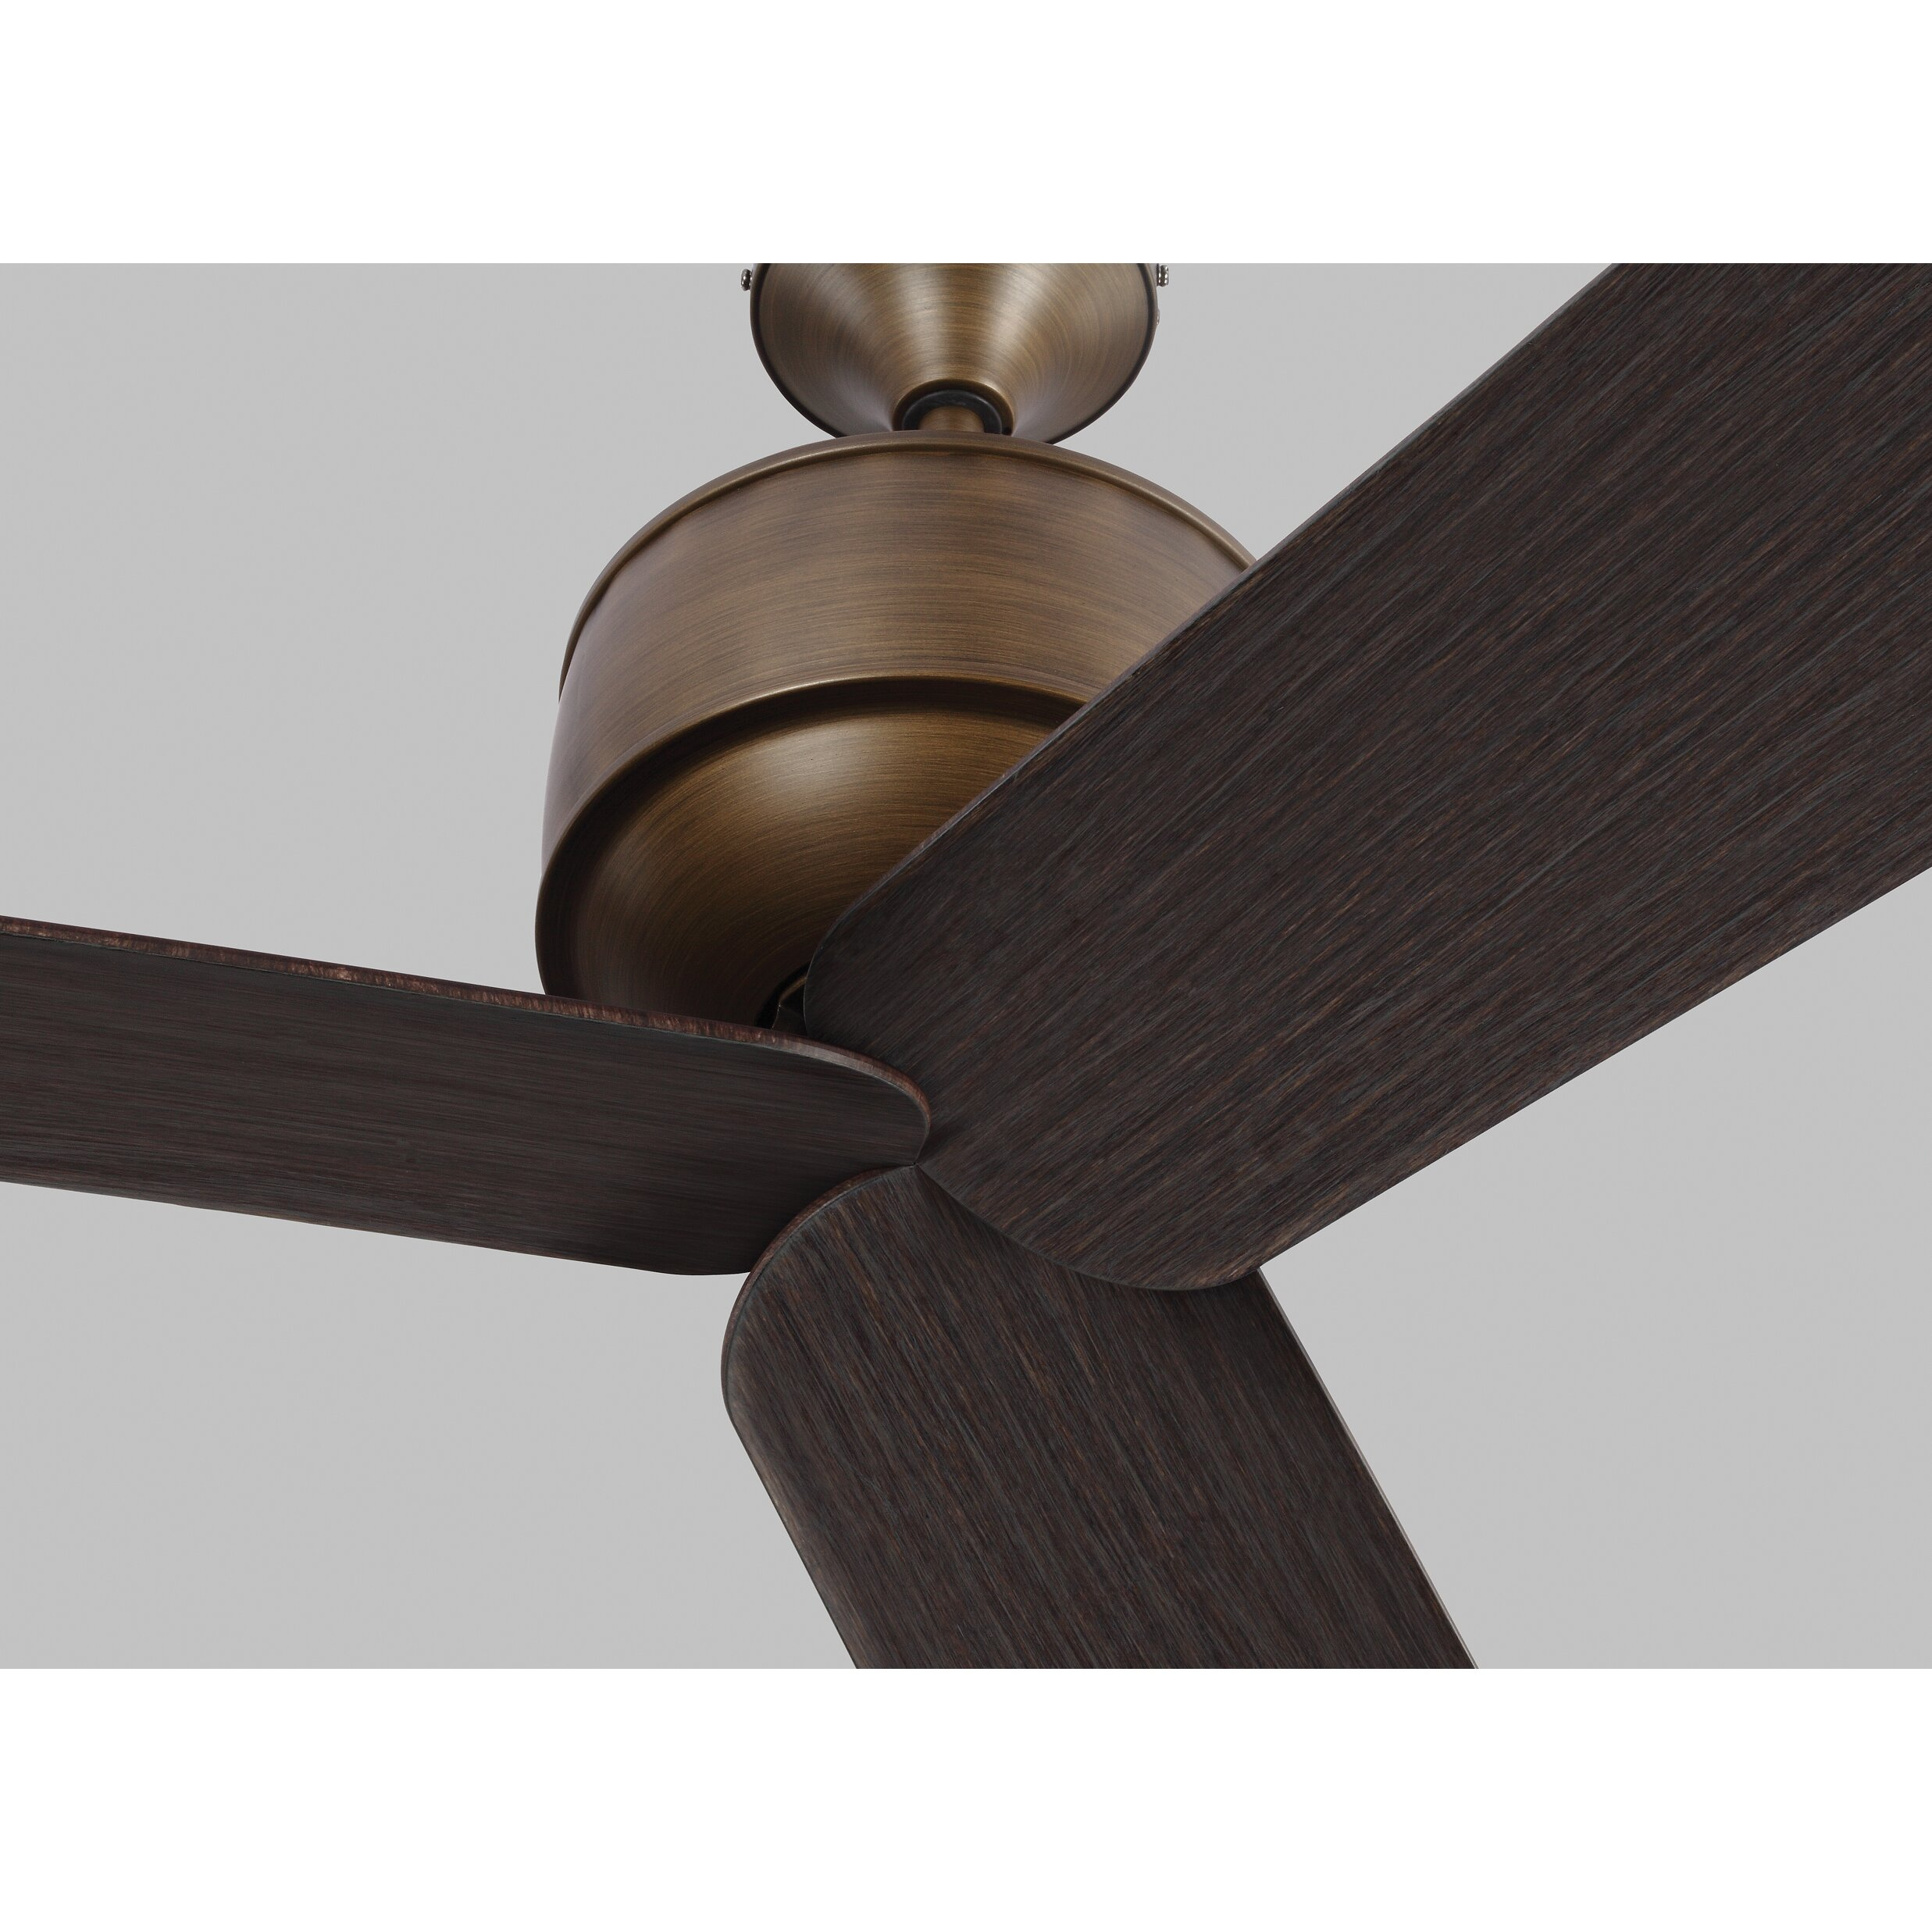 Brayden Studio 56 Quot Metis 3 Blade Ceiling Fan With Remote